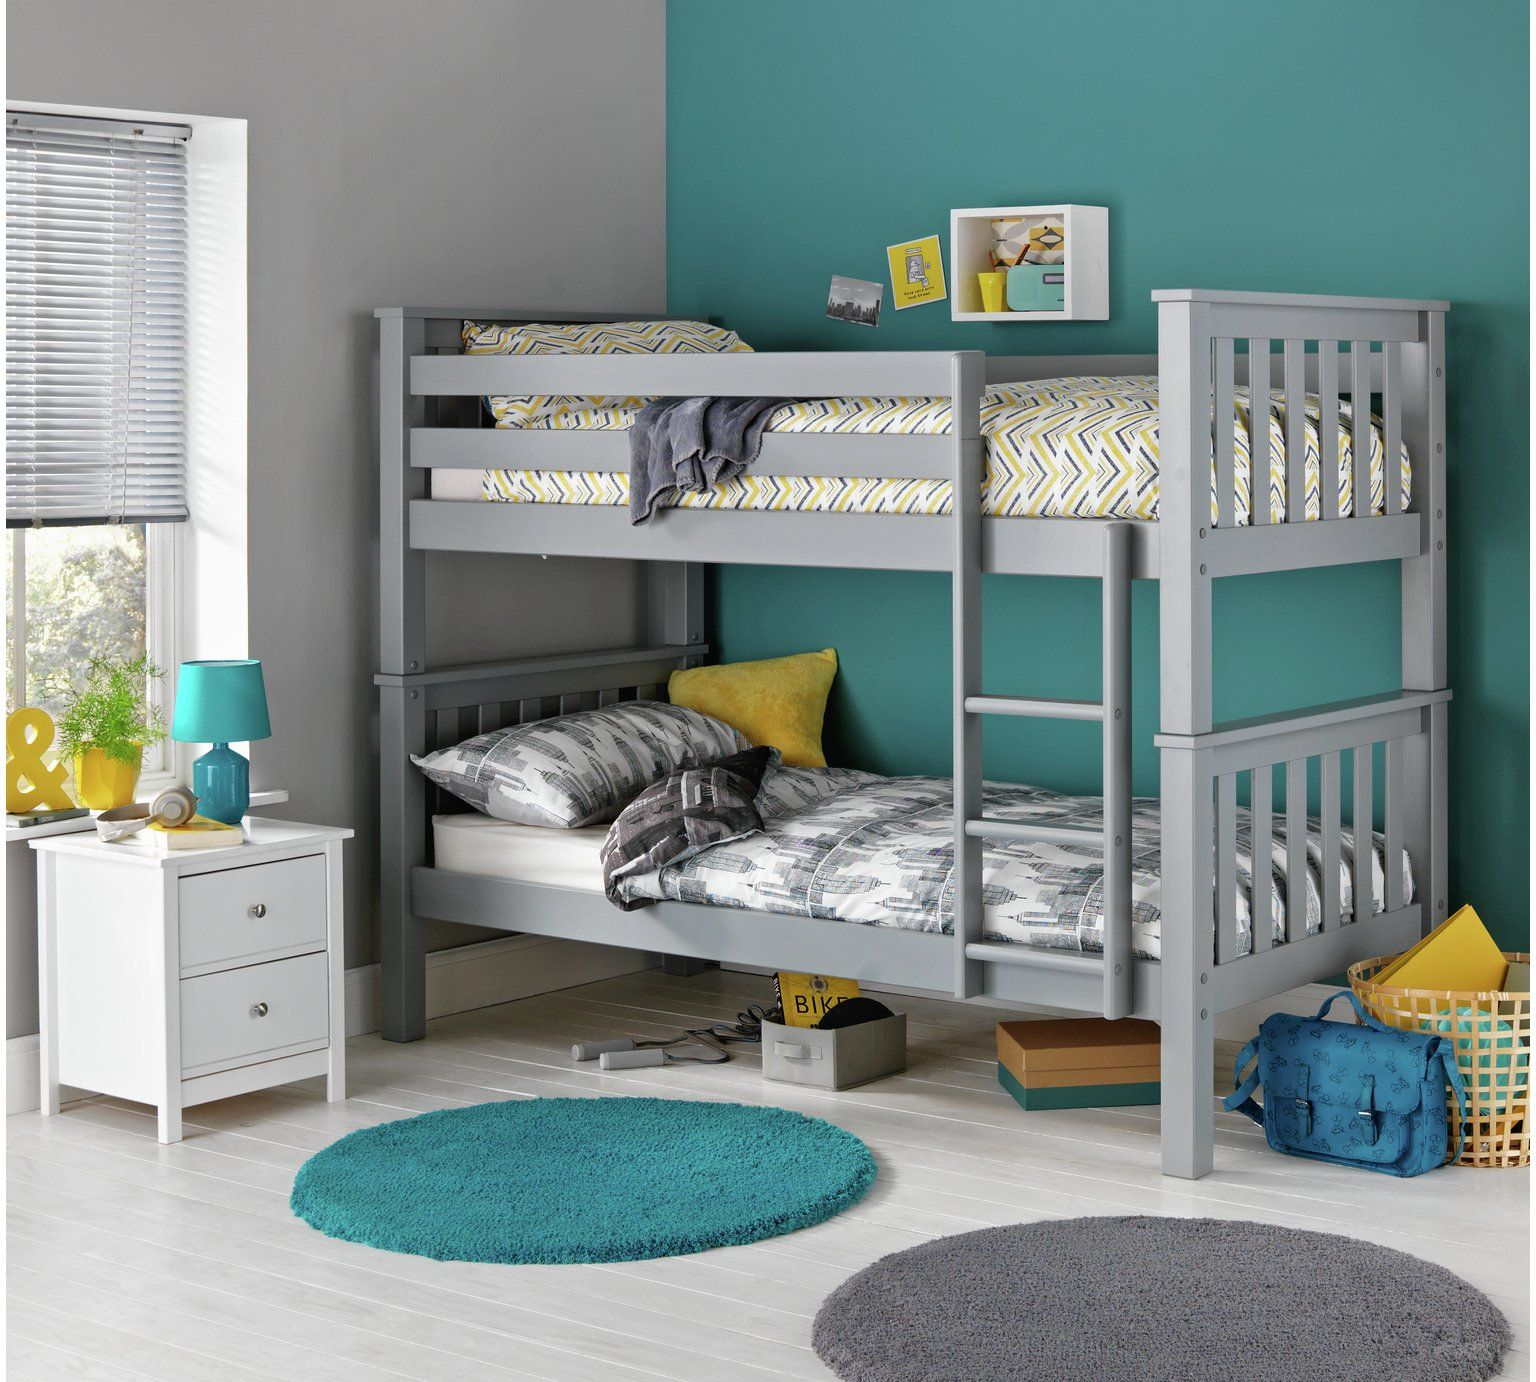 Home Heavy Duty Grey Bunk Bed Frame in 2019 Kid beds